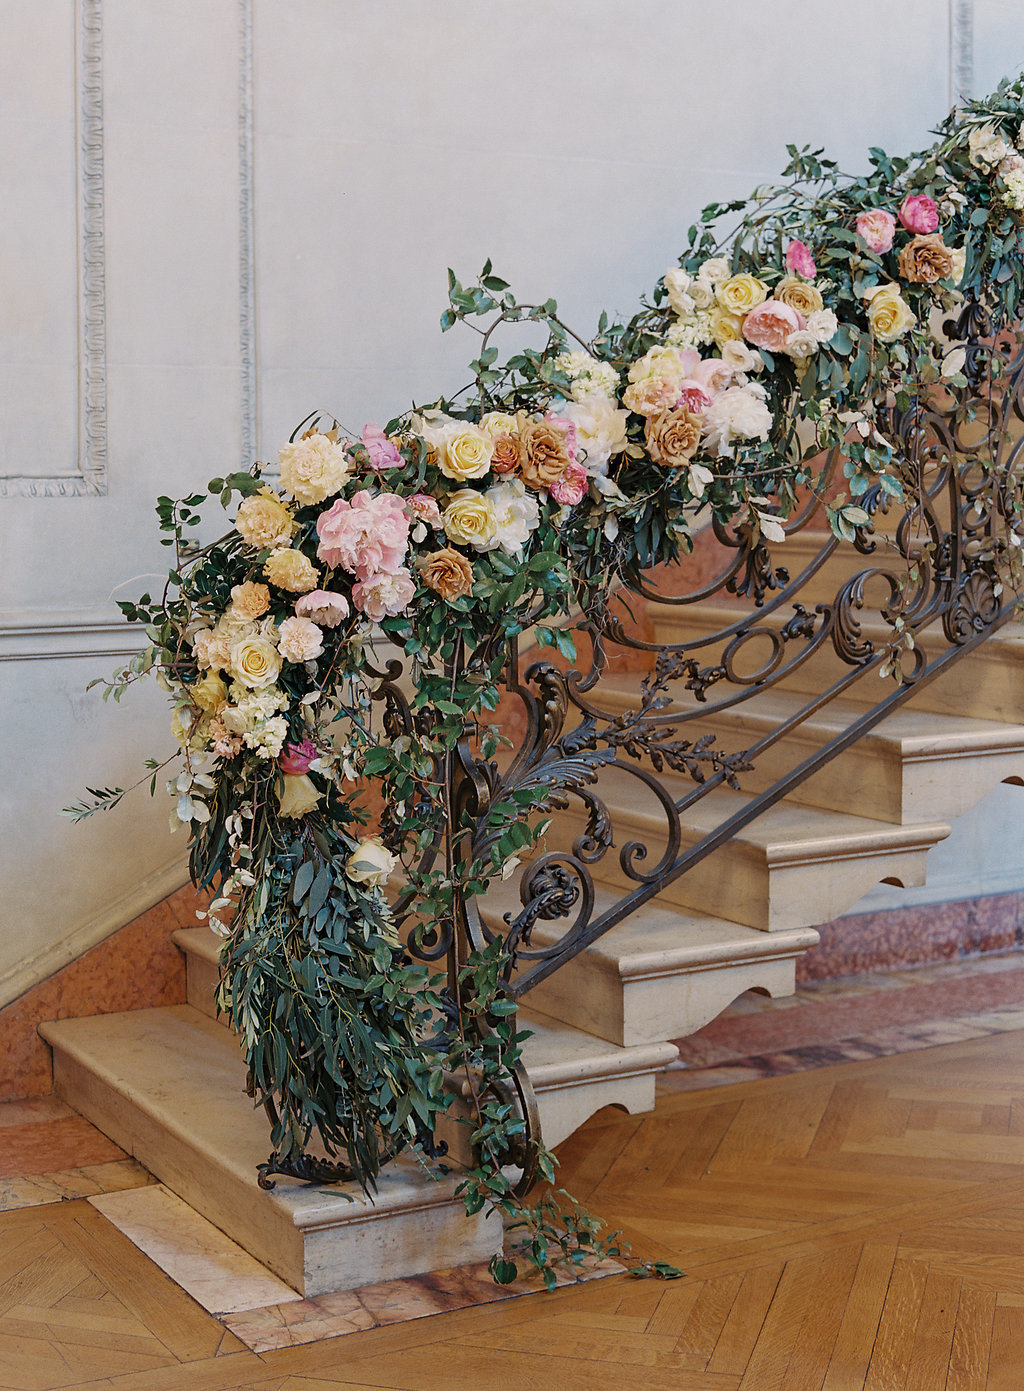 holly chapple floral banister, anderson house wedding, pamela barefoot dc wedding planner